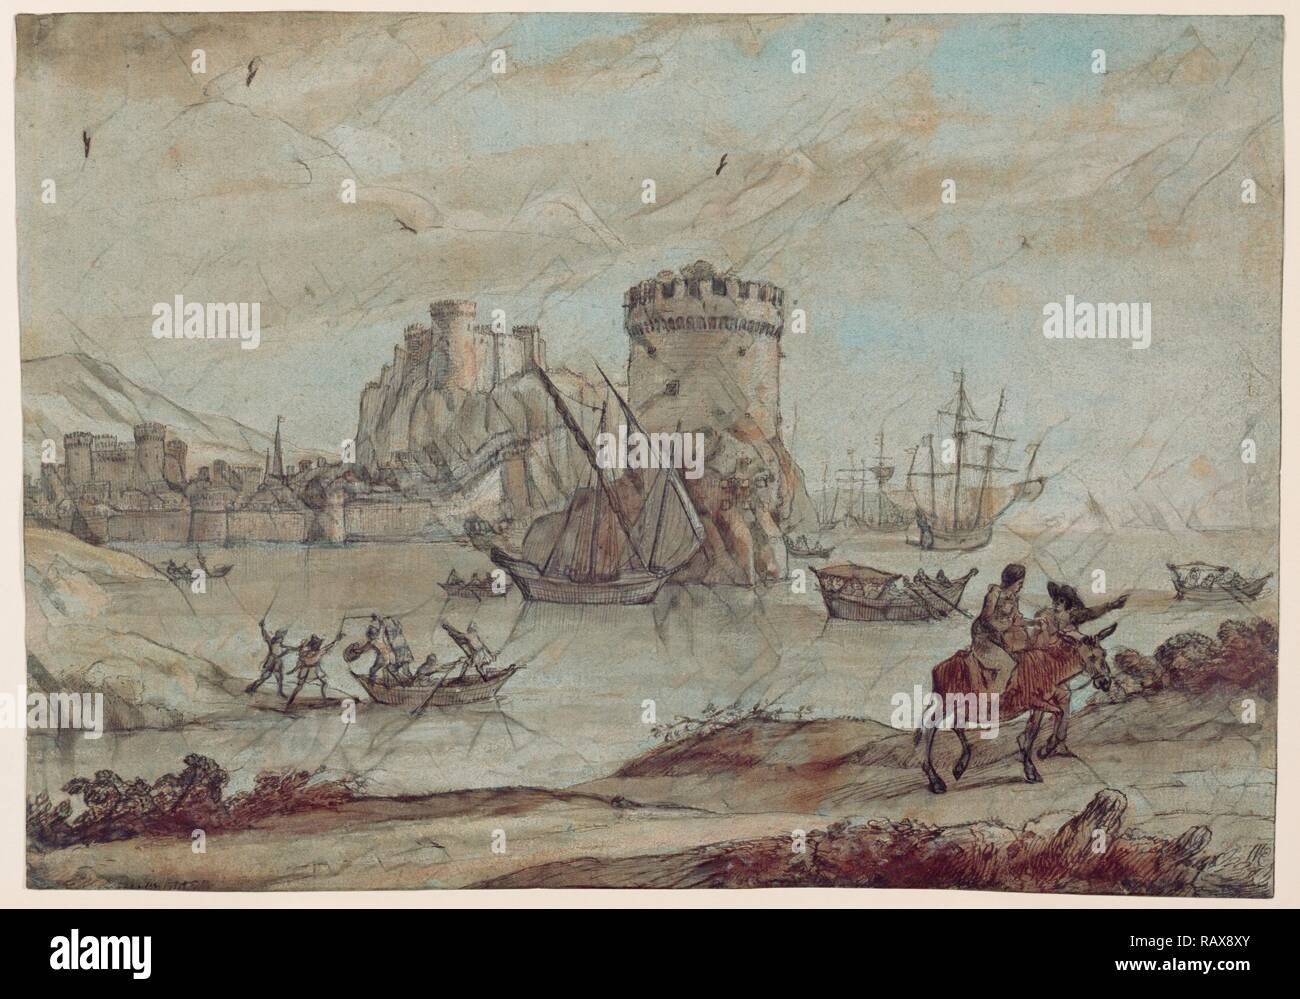 Figures in a Landscape before a Harbor, Claude Lorrain (Claude Gellée), French, 1604 or 1605 ? - 1682, France, Europe reimagined - Stock Image